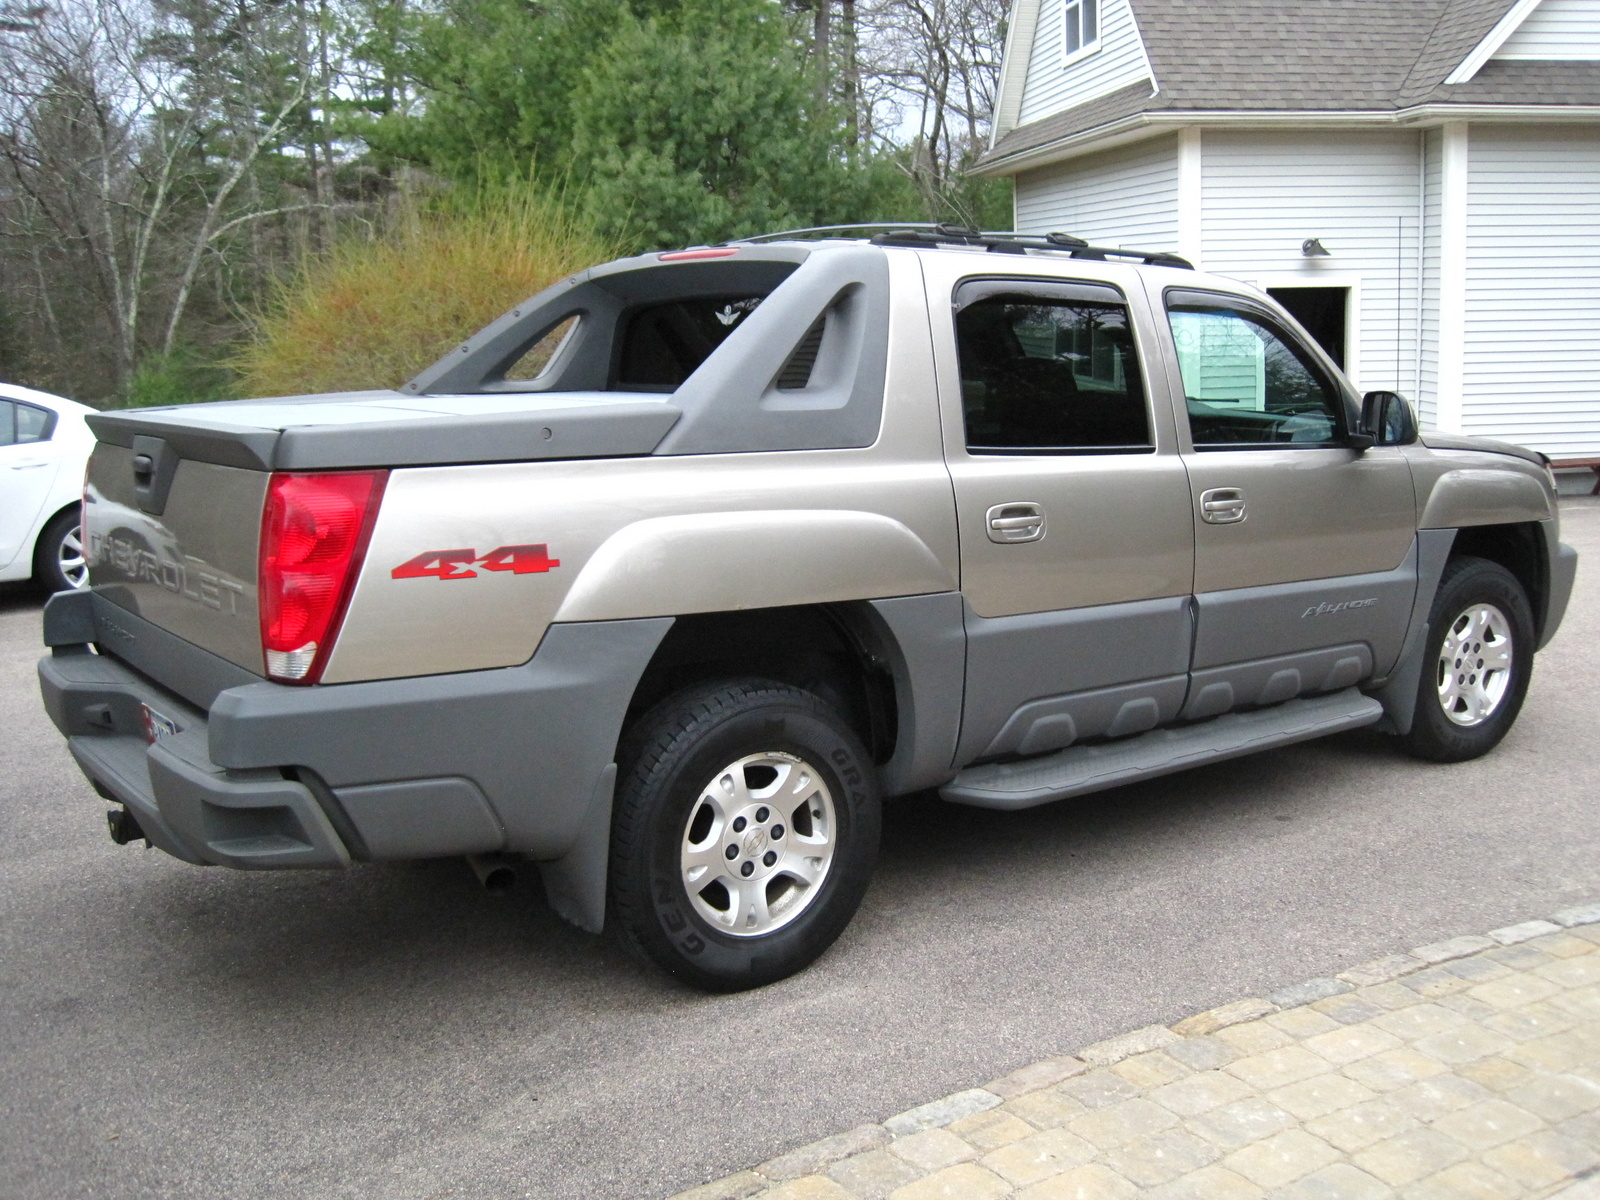 2002 chevrolet avalanche pictures cargurus. Black Bedroom Furniture Sets. Home Design Ideas